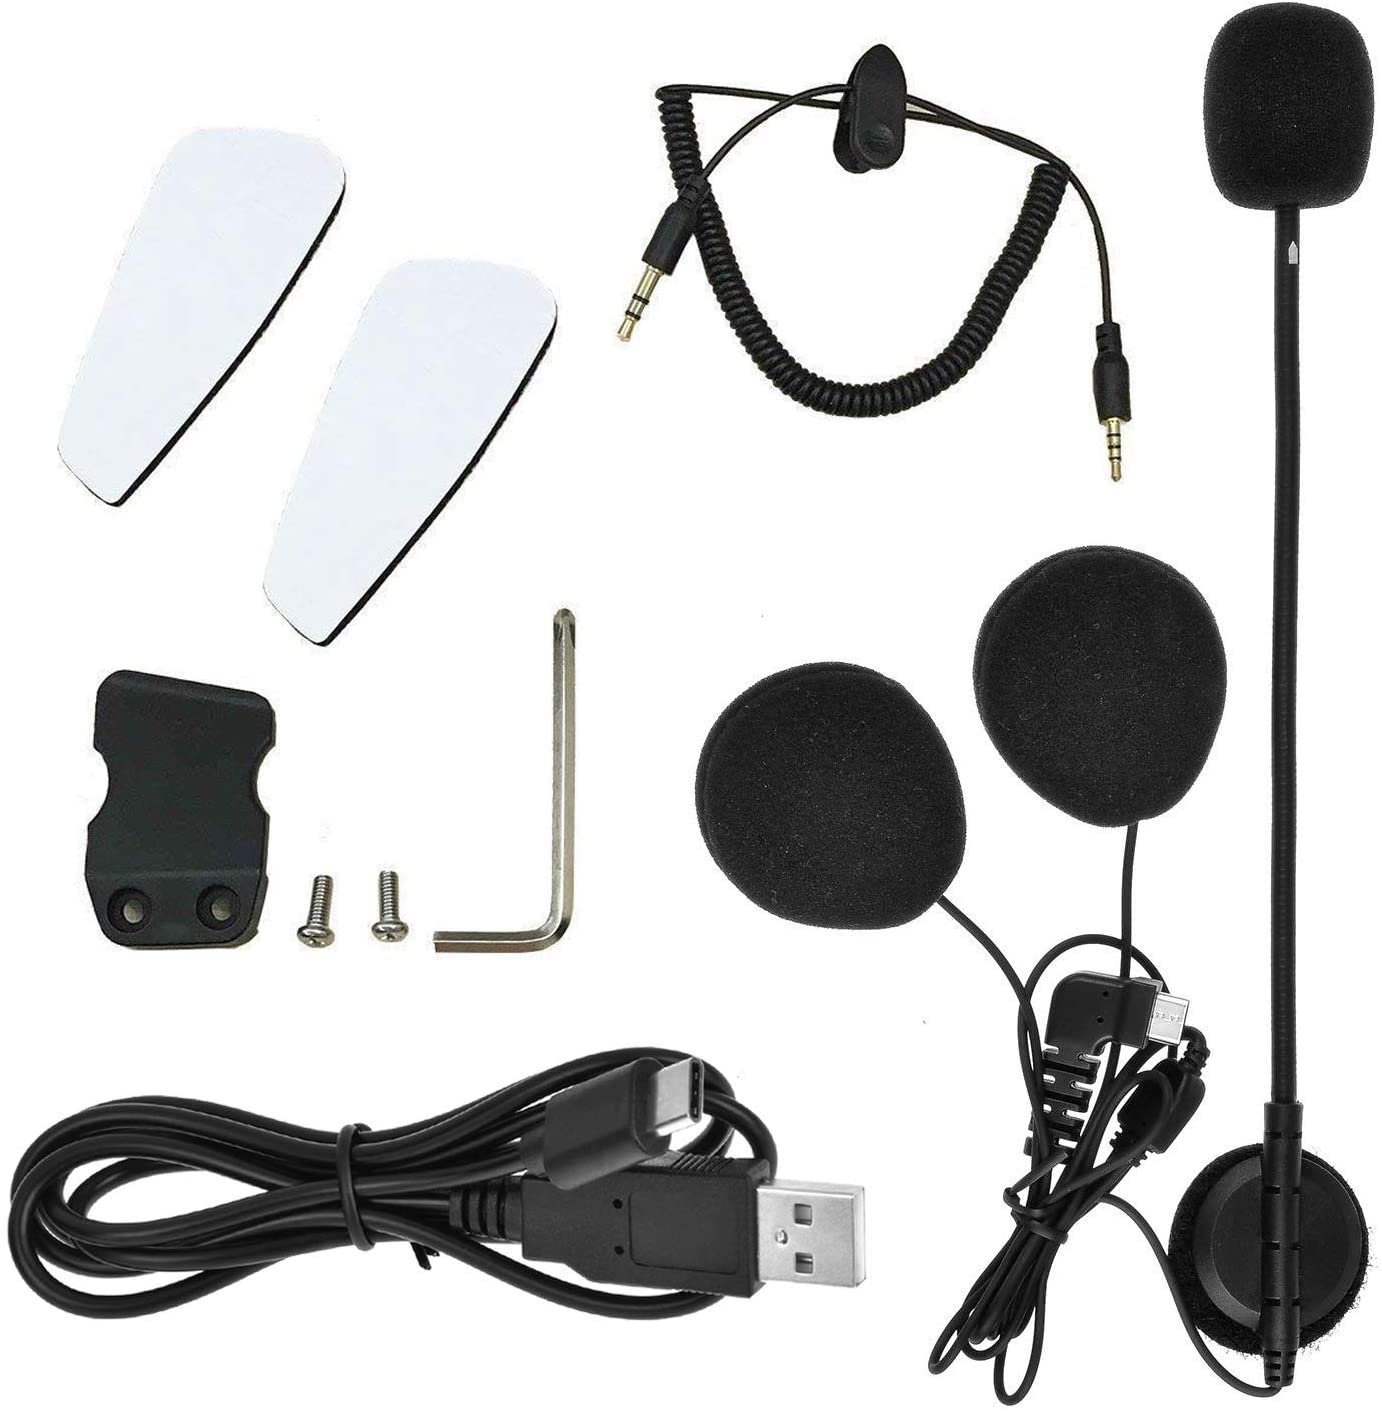 HuanGou BT-S2 Motorcycle Bluetooth Headset Intercom Type-C Interface Boom Microphone Earphone Audio Cable Charger Cable Mounting Clip Velcro Kits Accessories